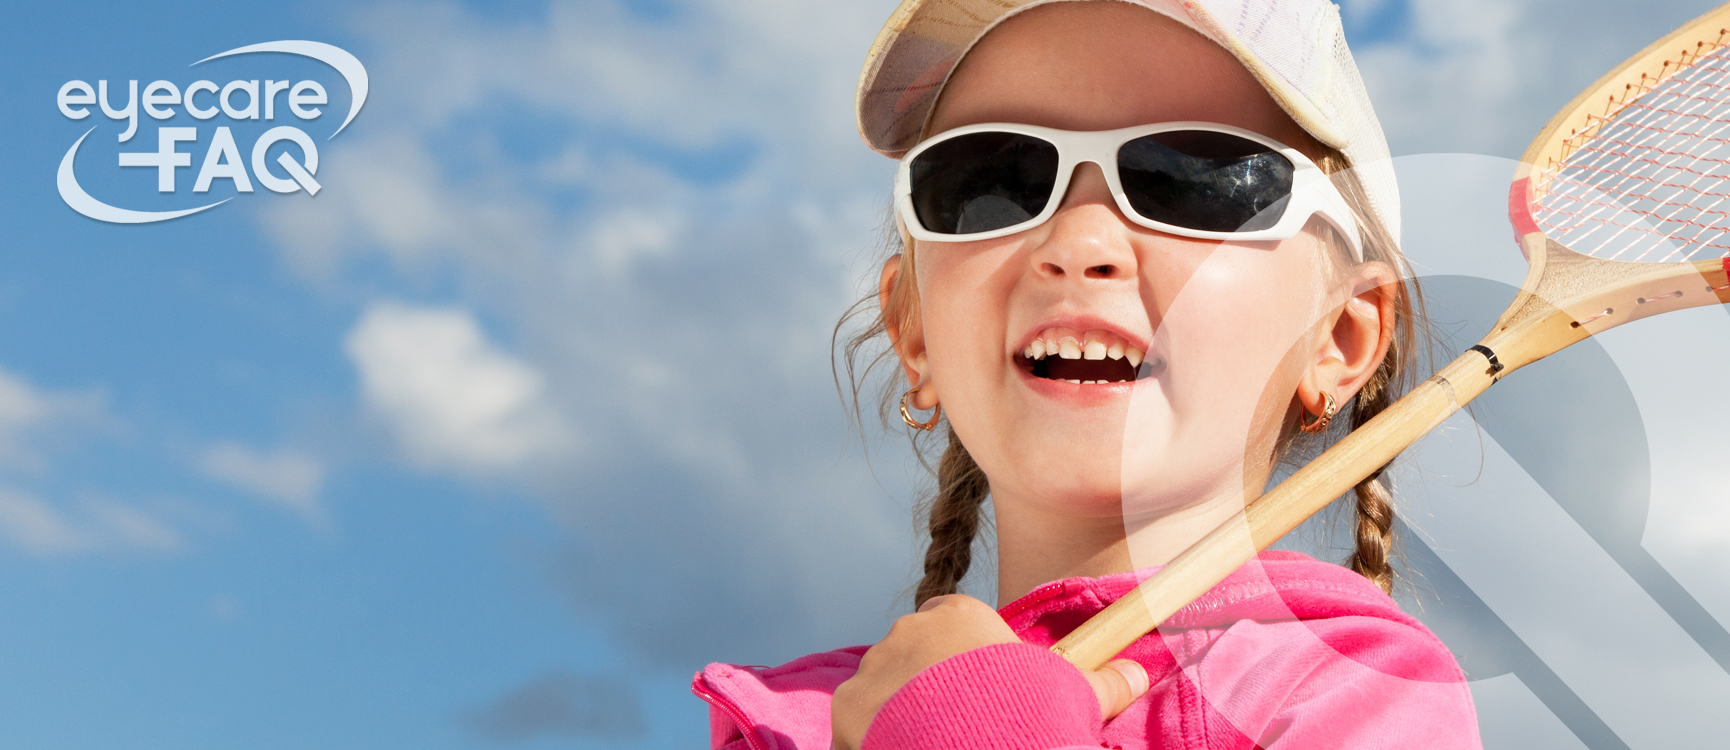 Sports eyewear for children what you need to know from eyecareFAQ